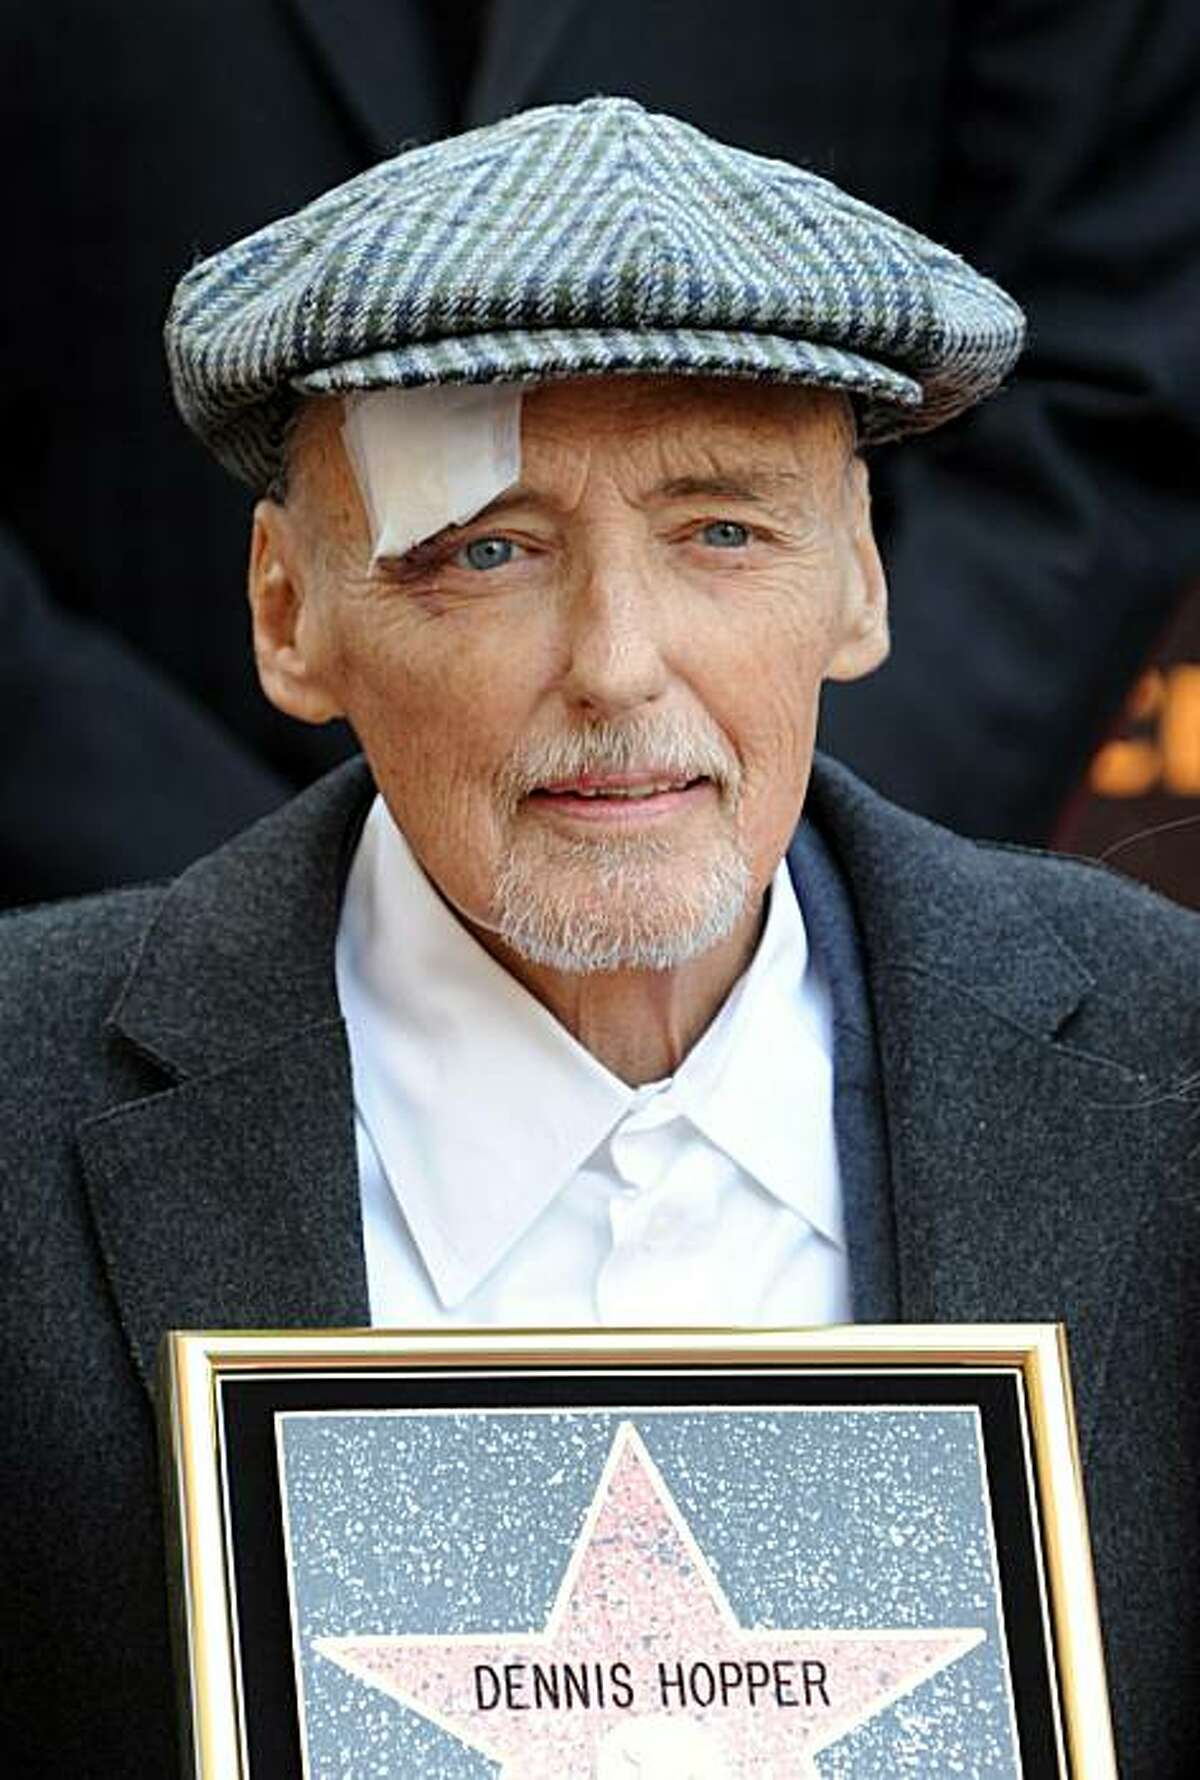 Actor Dennis Hopper is honored with the 2,403rd Star on the Hollywood Walk of Fame on March 26, 2010 in Hollywood, California. Hopper, 74, died of complications from prostate cancer at his home on May 29, 2010 in Venice, California.